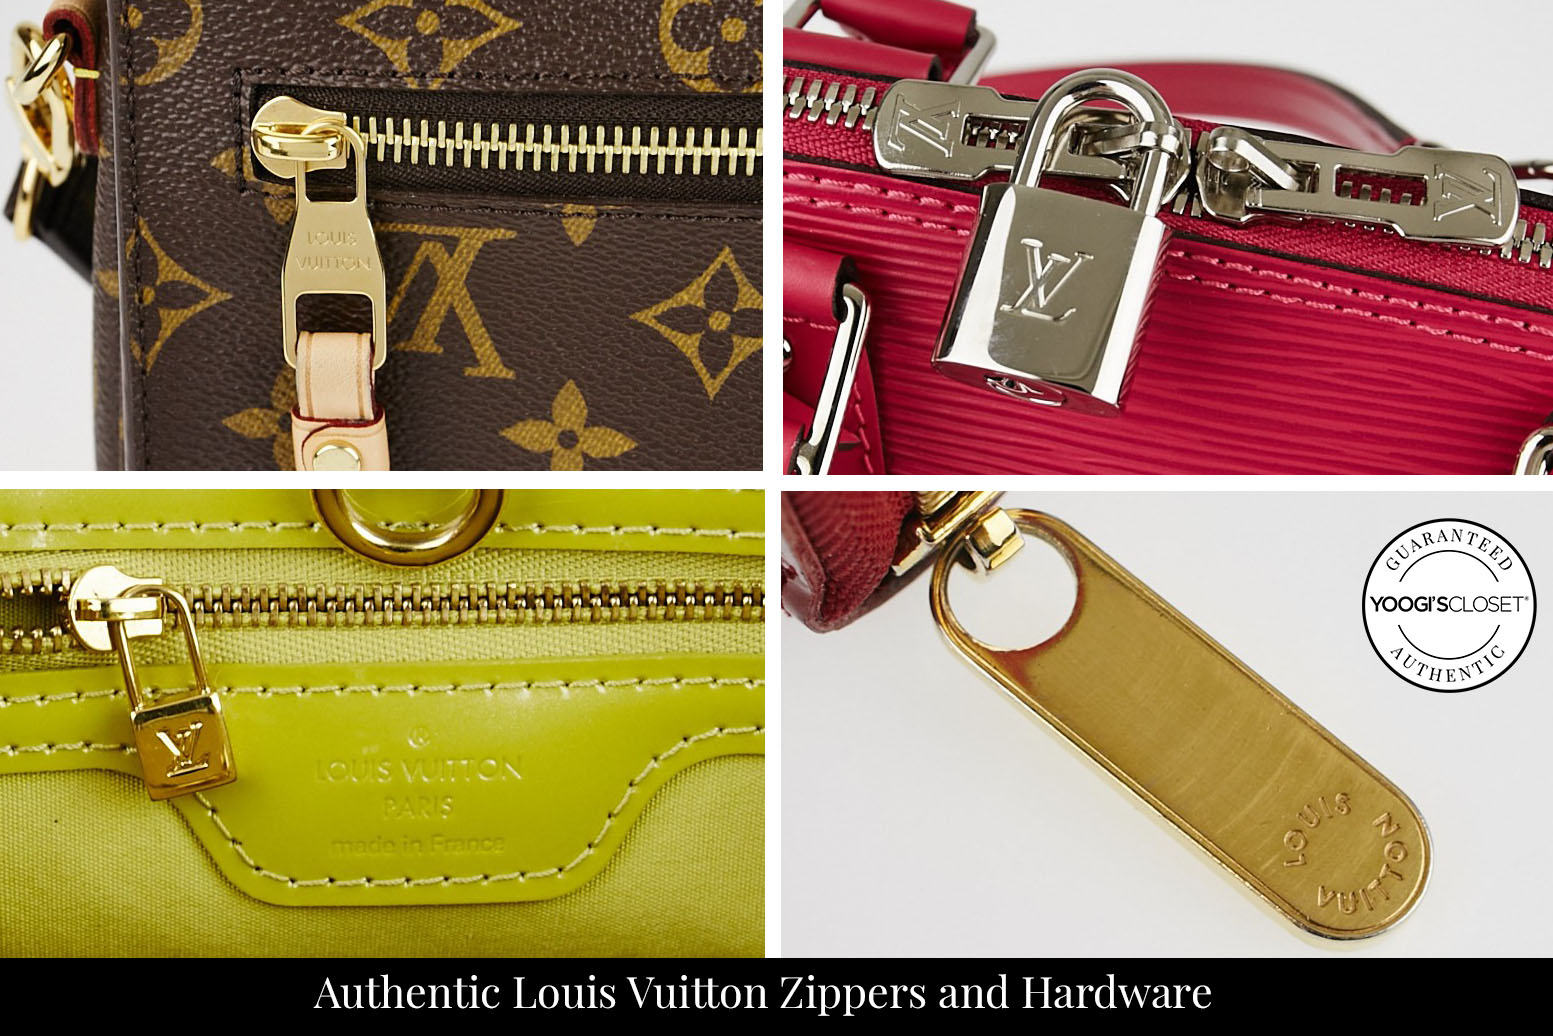 3aea3fcb1118 Top 10 Tips For Authenticating Louis Vuitton - Yoogi's Closet Blog